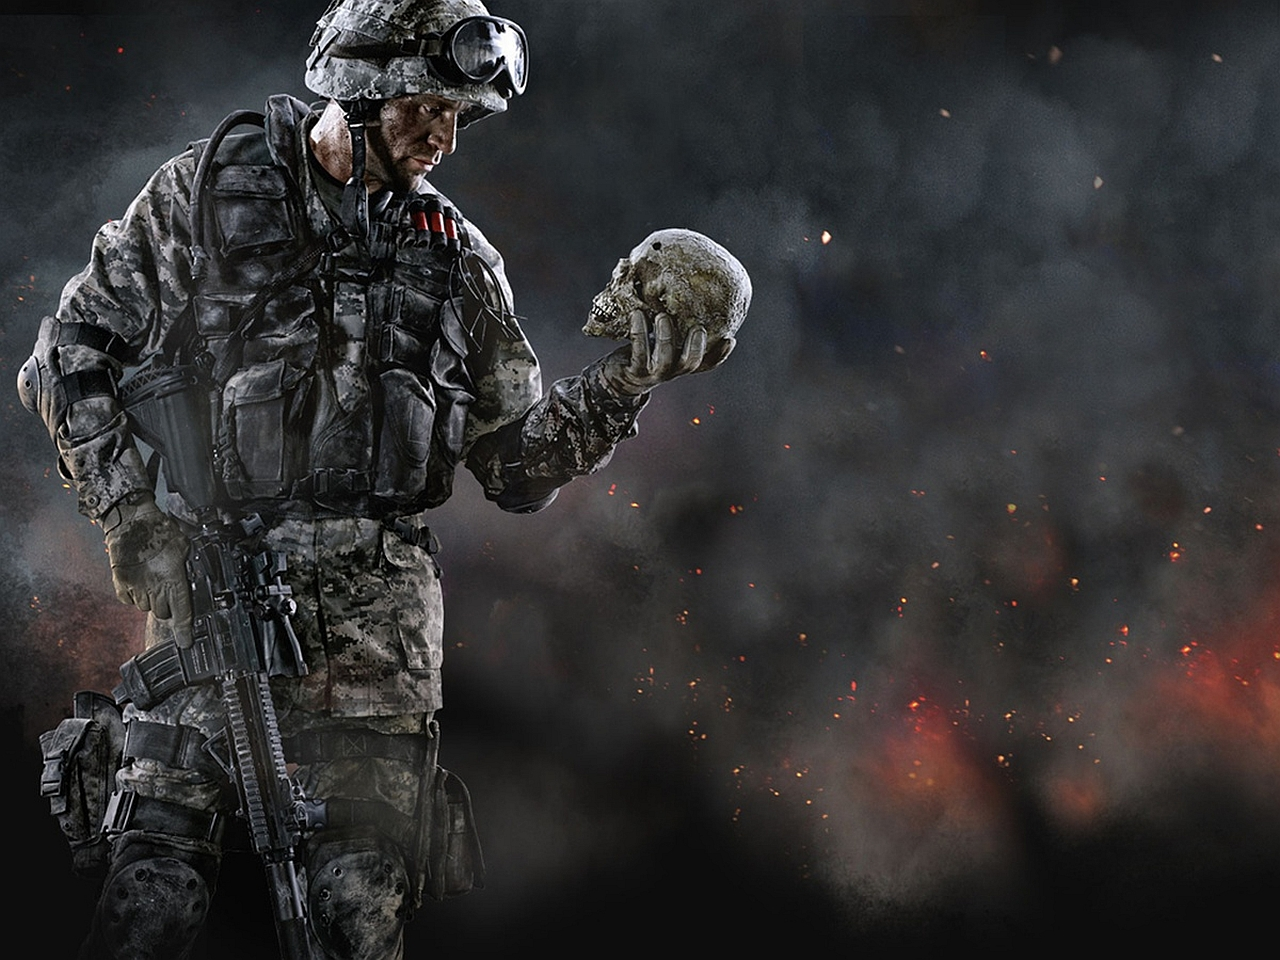 48 awesome military wallpapers on wallpapersafari - Awesome army wallpapers ...